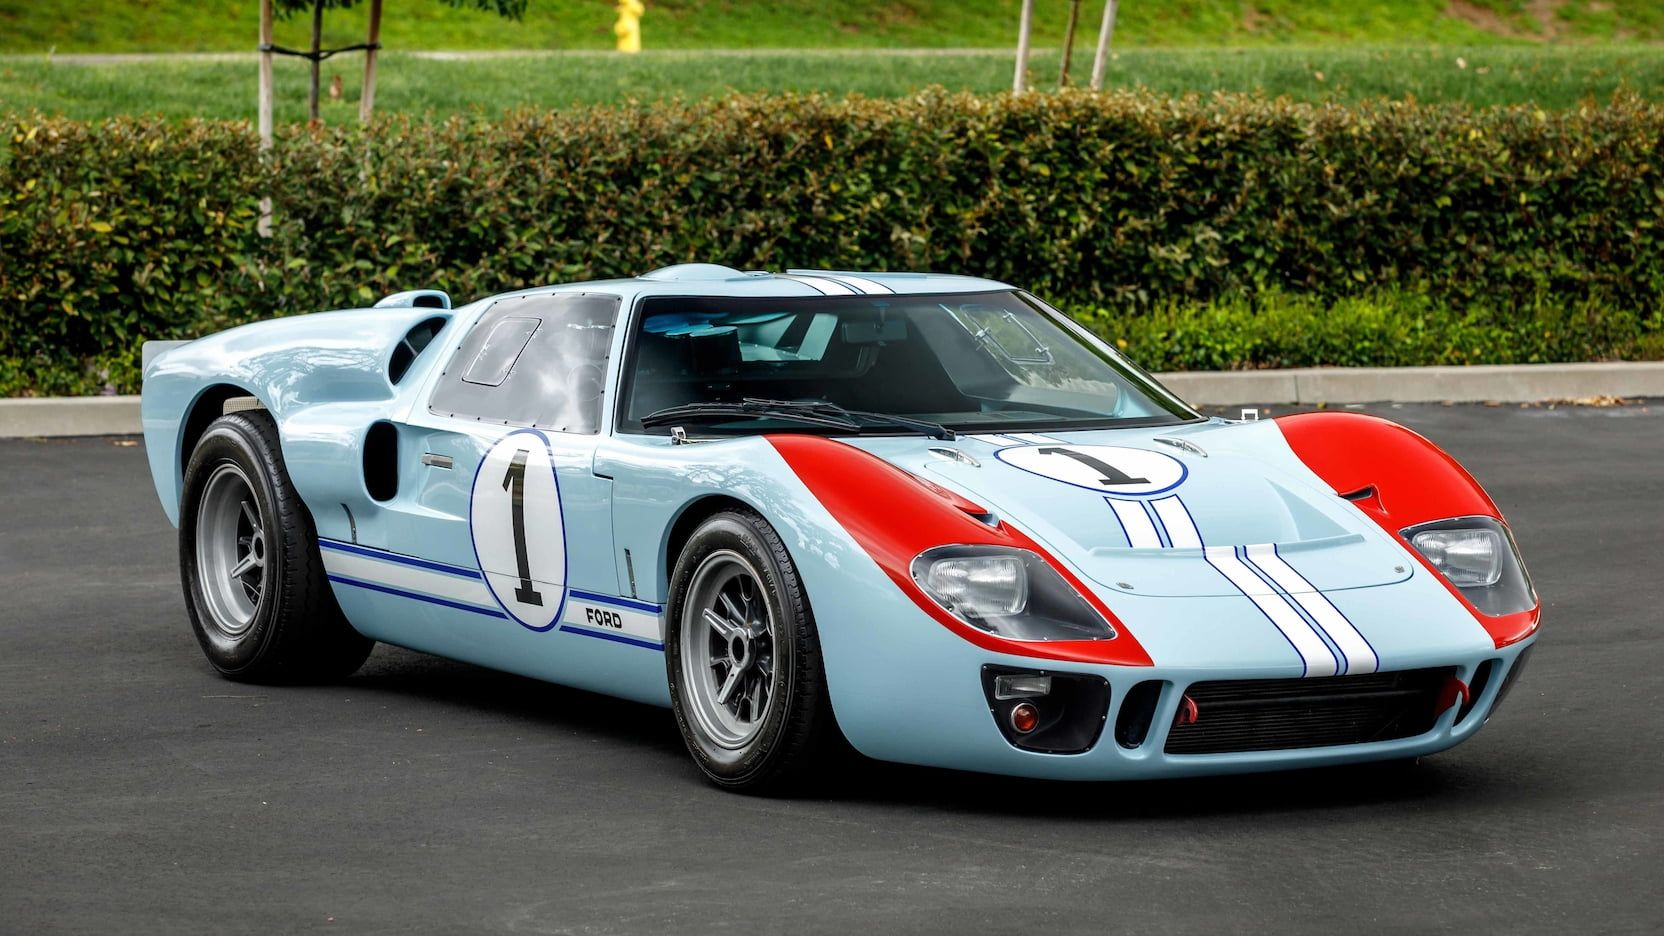 You Can Own One Of The Superformance Ford Gt40 Replicas From The Ford V Ferrari Movie Top Speed Ford Gt40 Ken Miles Gt40